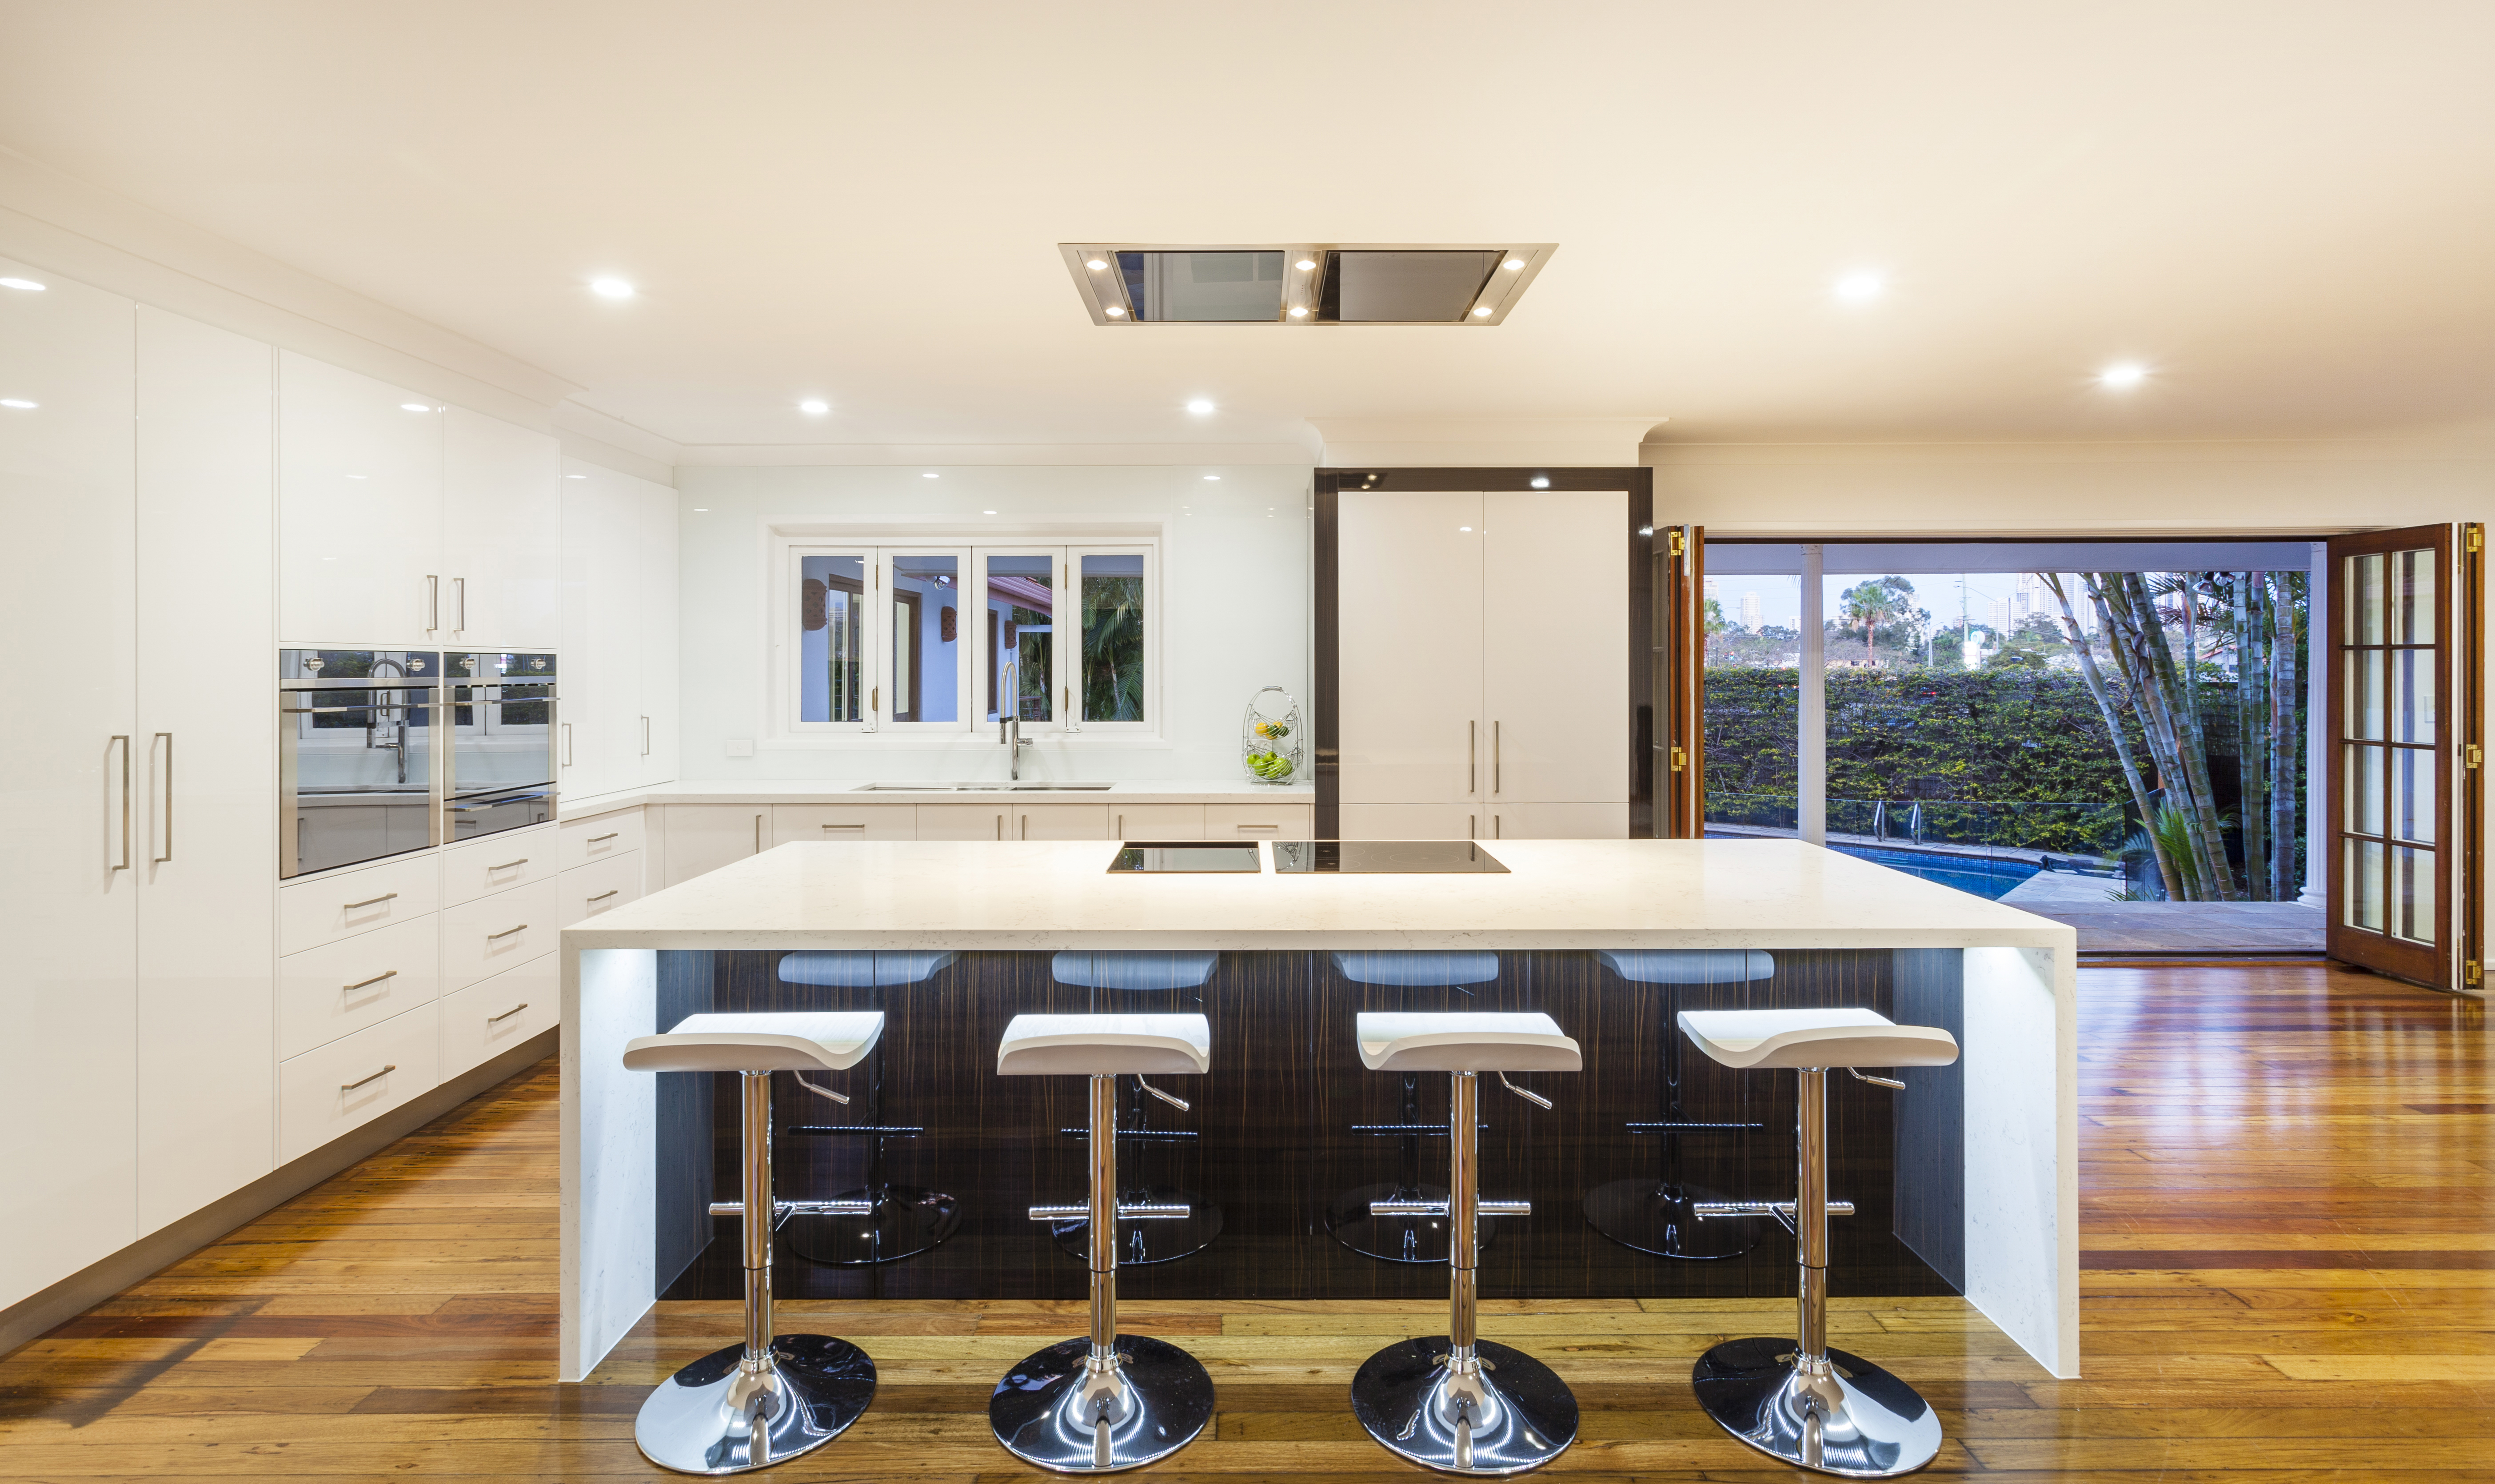 A lovely stylish kitchen with a breakfast bar and leather stools